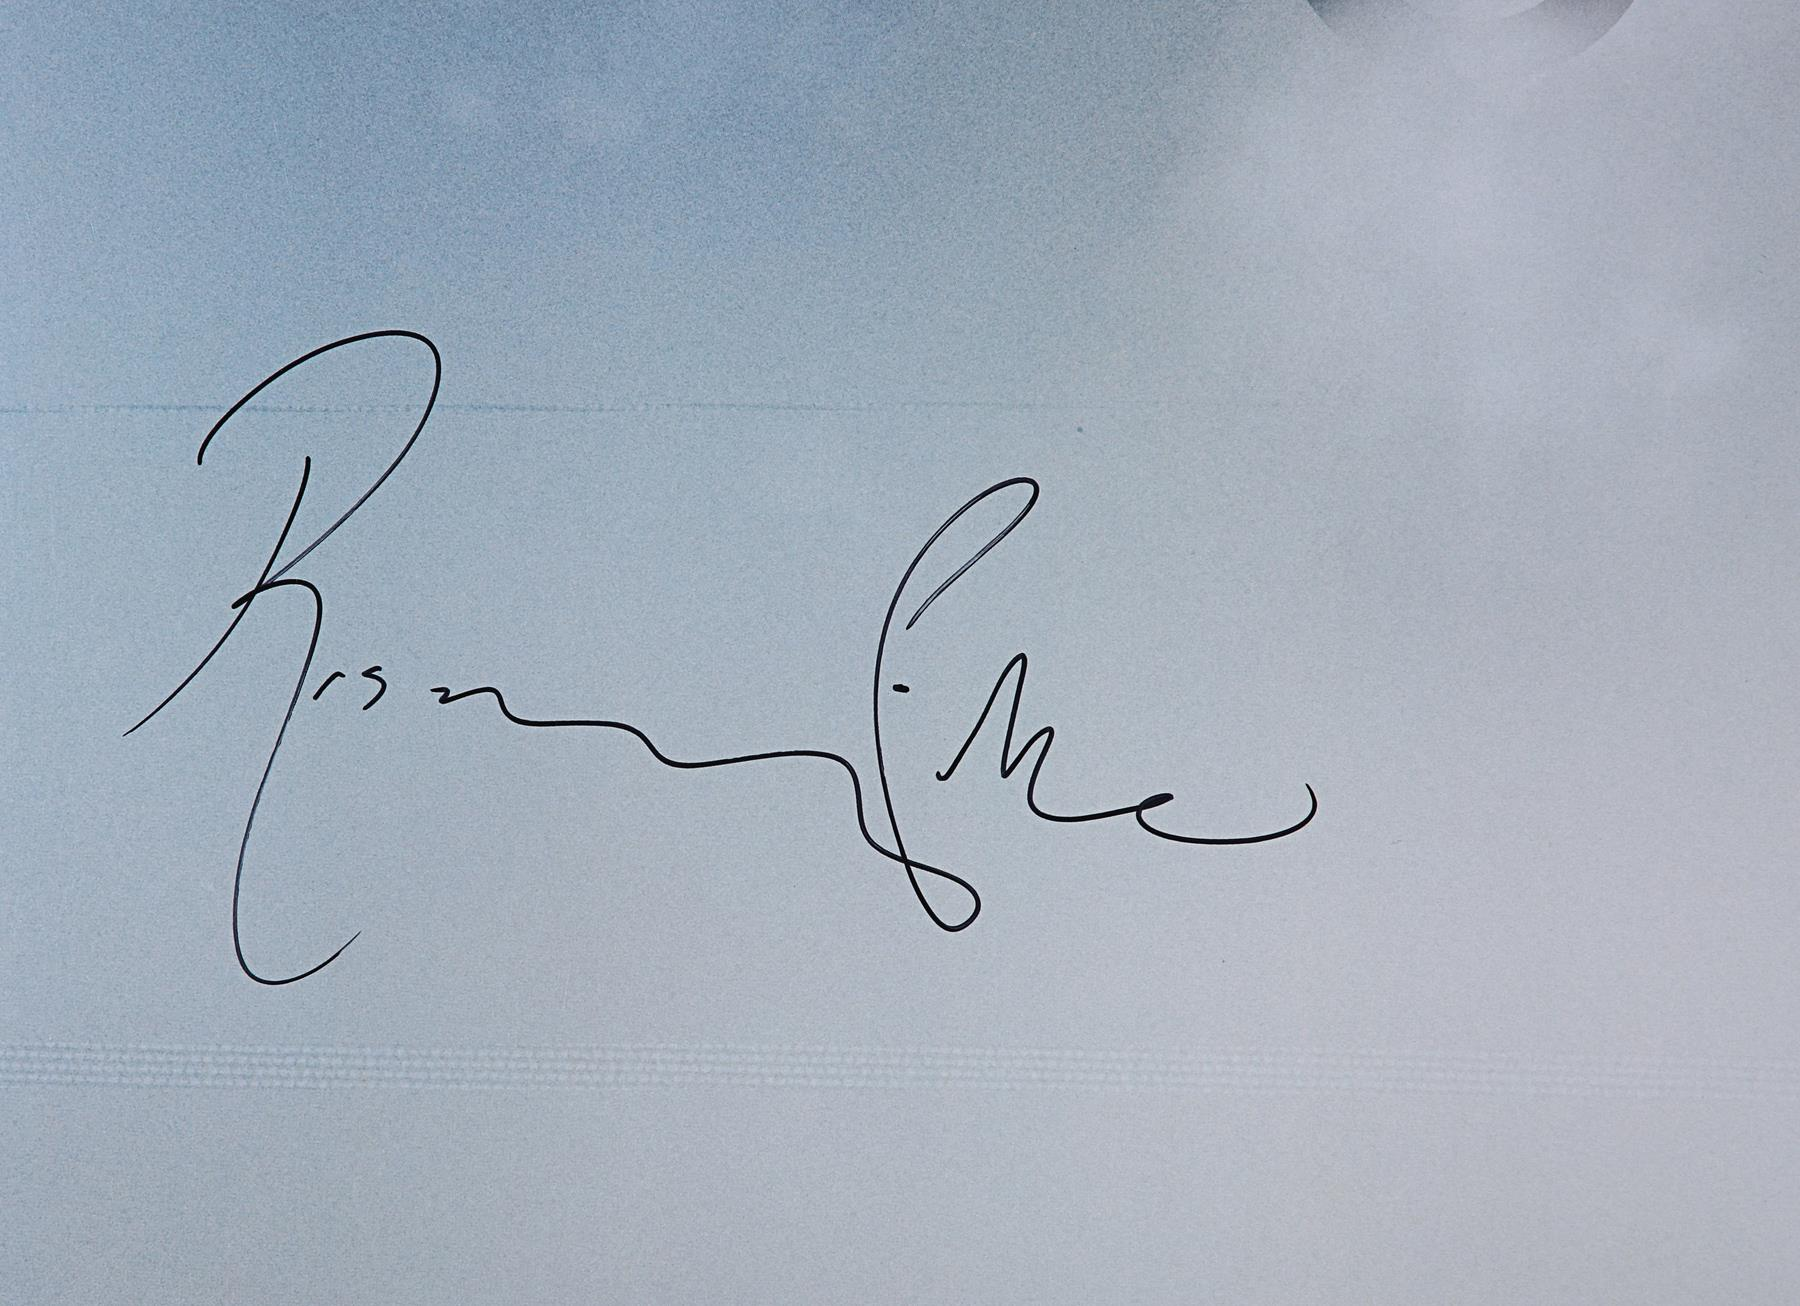 GONE GIRL (2014) - Poster Autographed by David Fincher and Rosamund Pike - Image 5 of 7